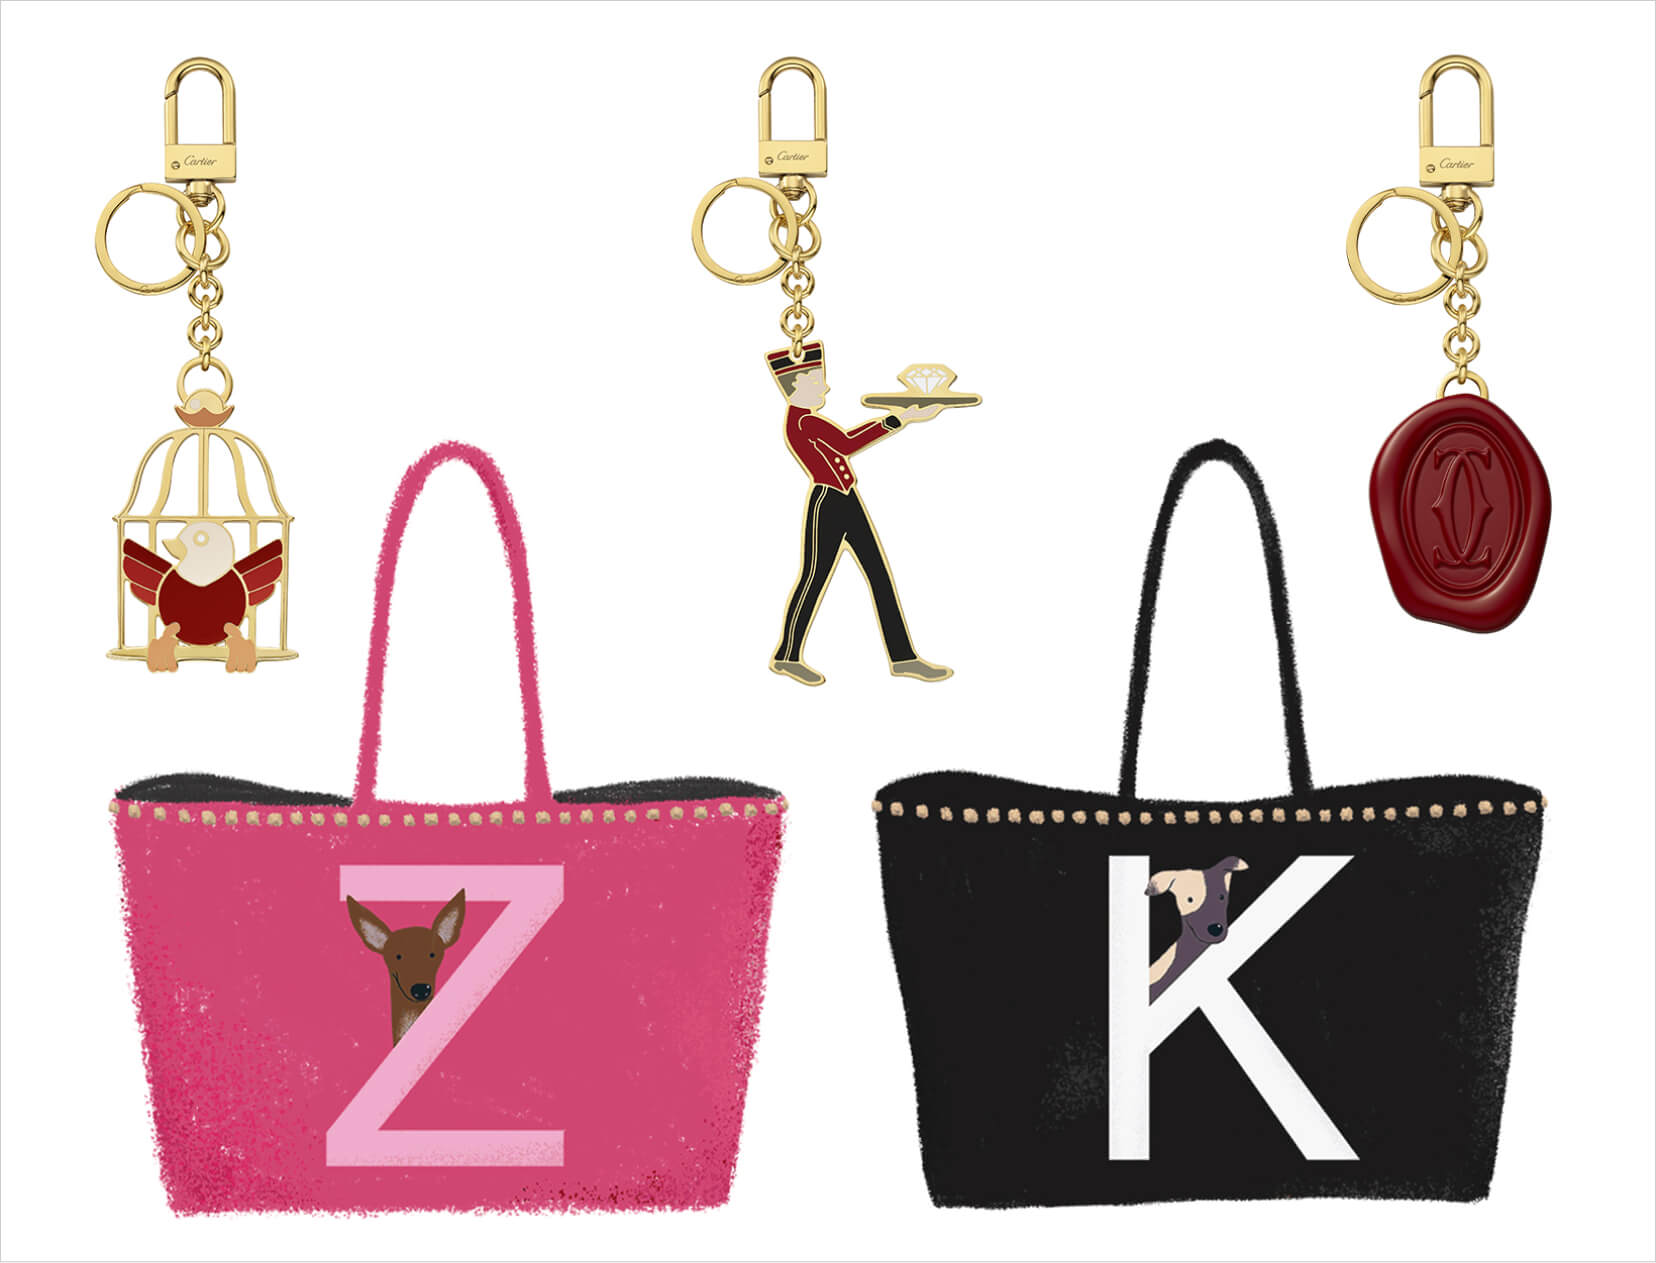 keychain and tote bags